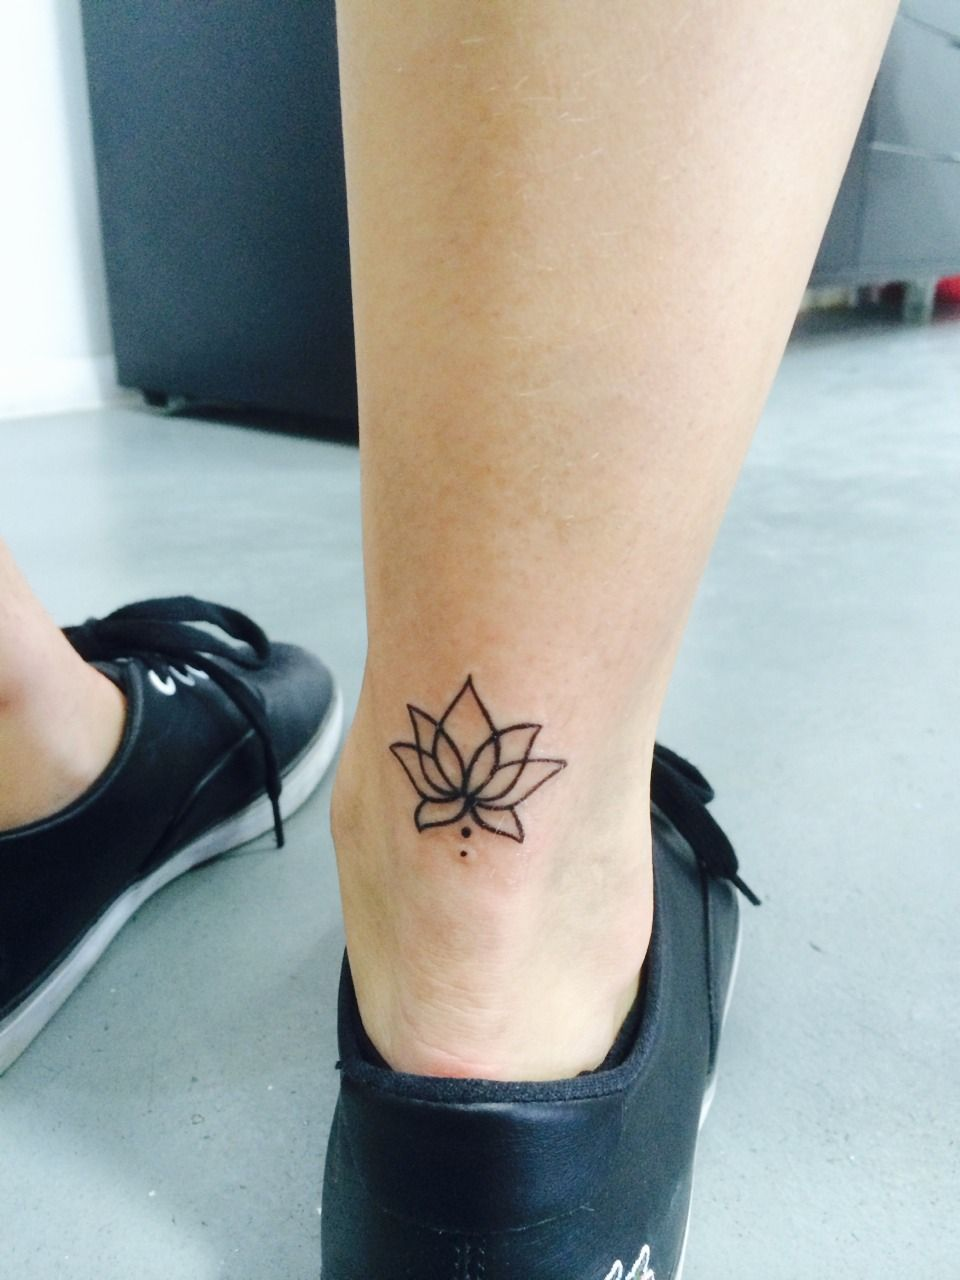 Ideas about flower ankle tattoos on pinterest little lotus flower - Love The Placement Looks Like A Lotus Flower Tattoo